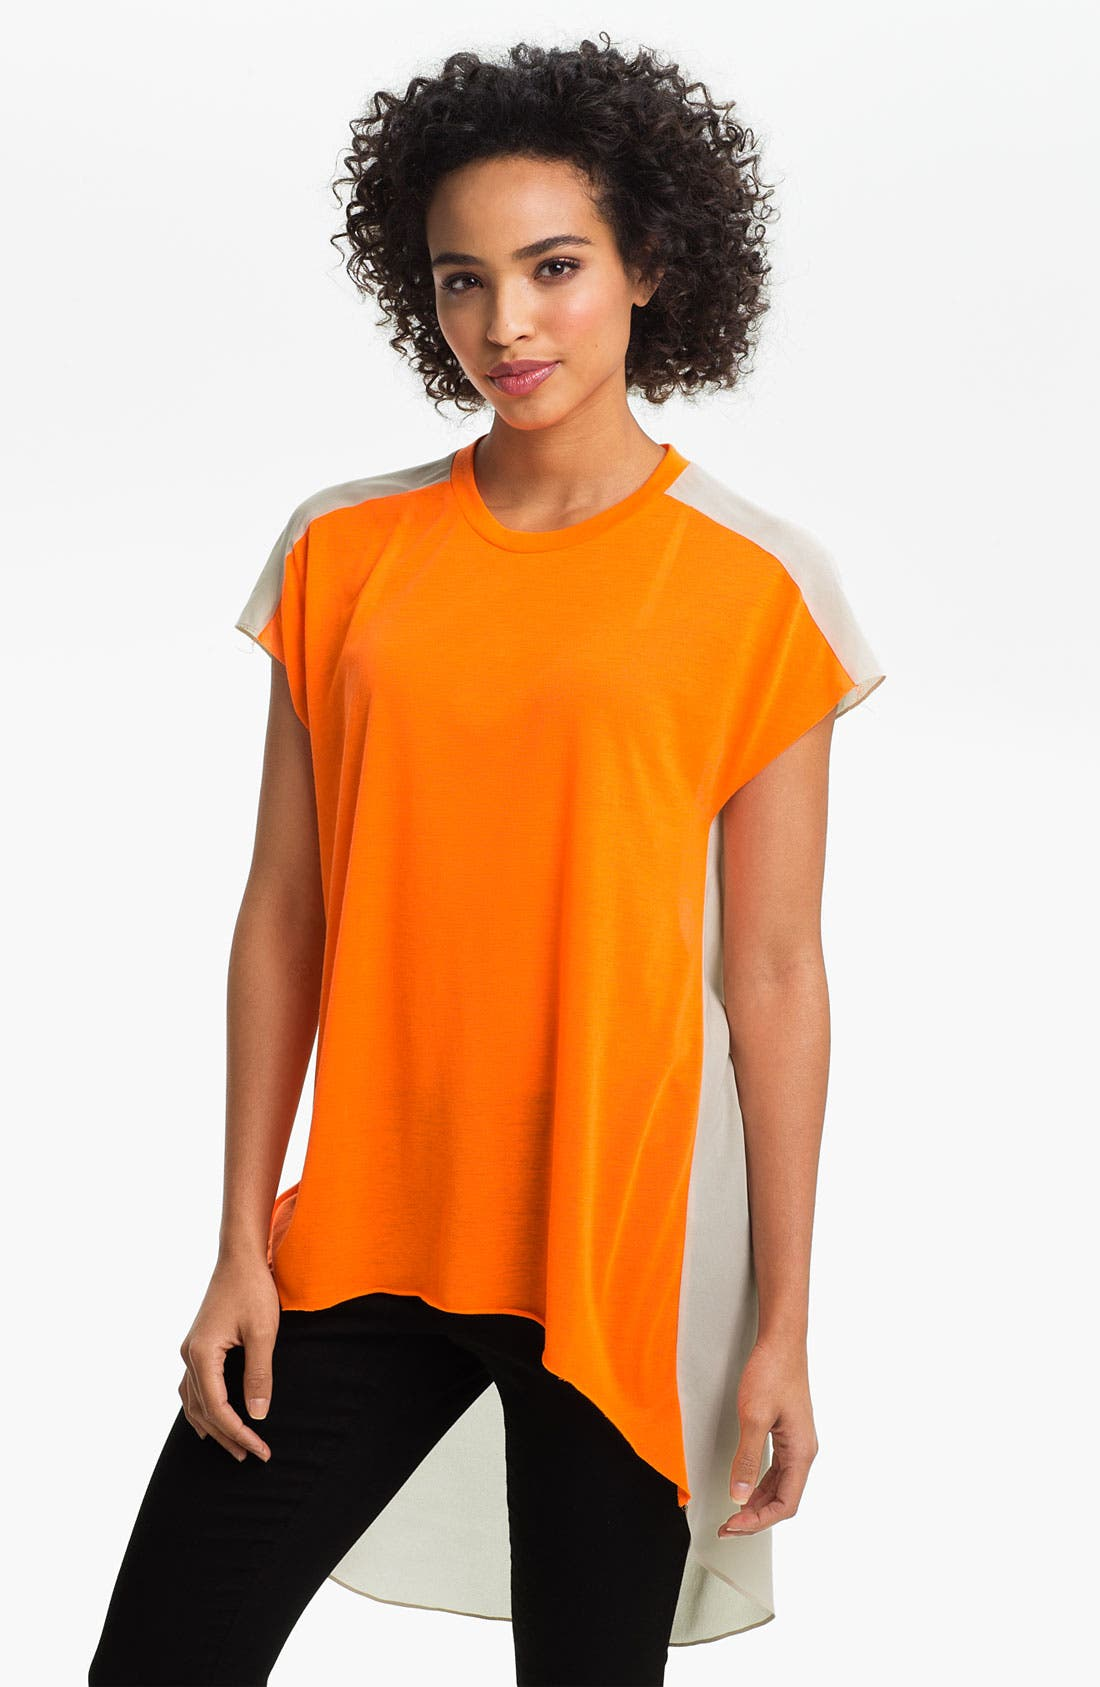 Alternate Image 1 Selected - Two by Vince Camuto Colorblock Tee